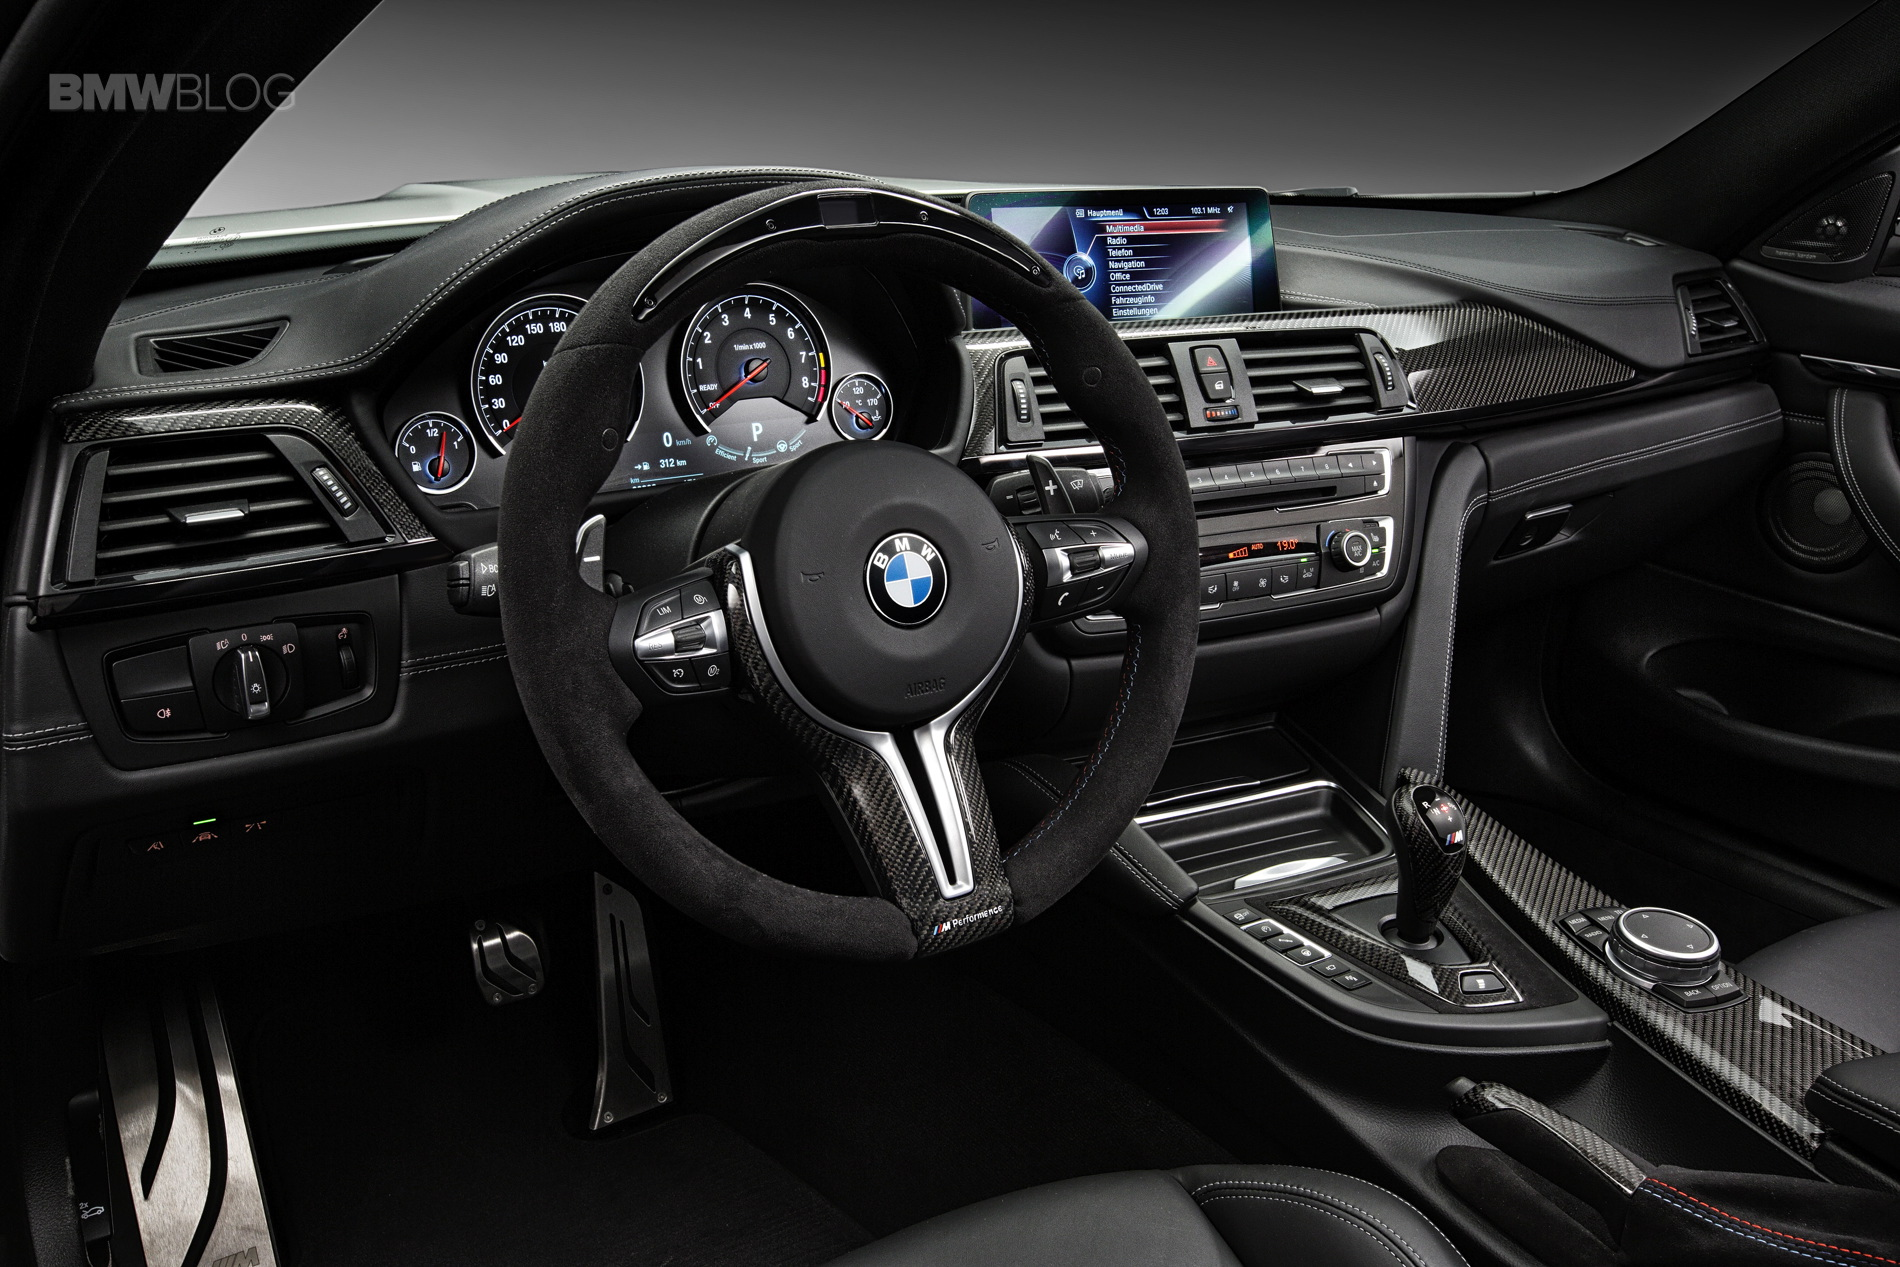 New M Performance Parts For Bmw M3 Bmw M4 Coupe And Bmw